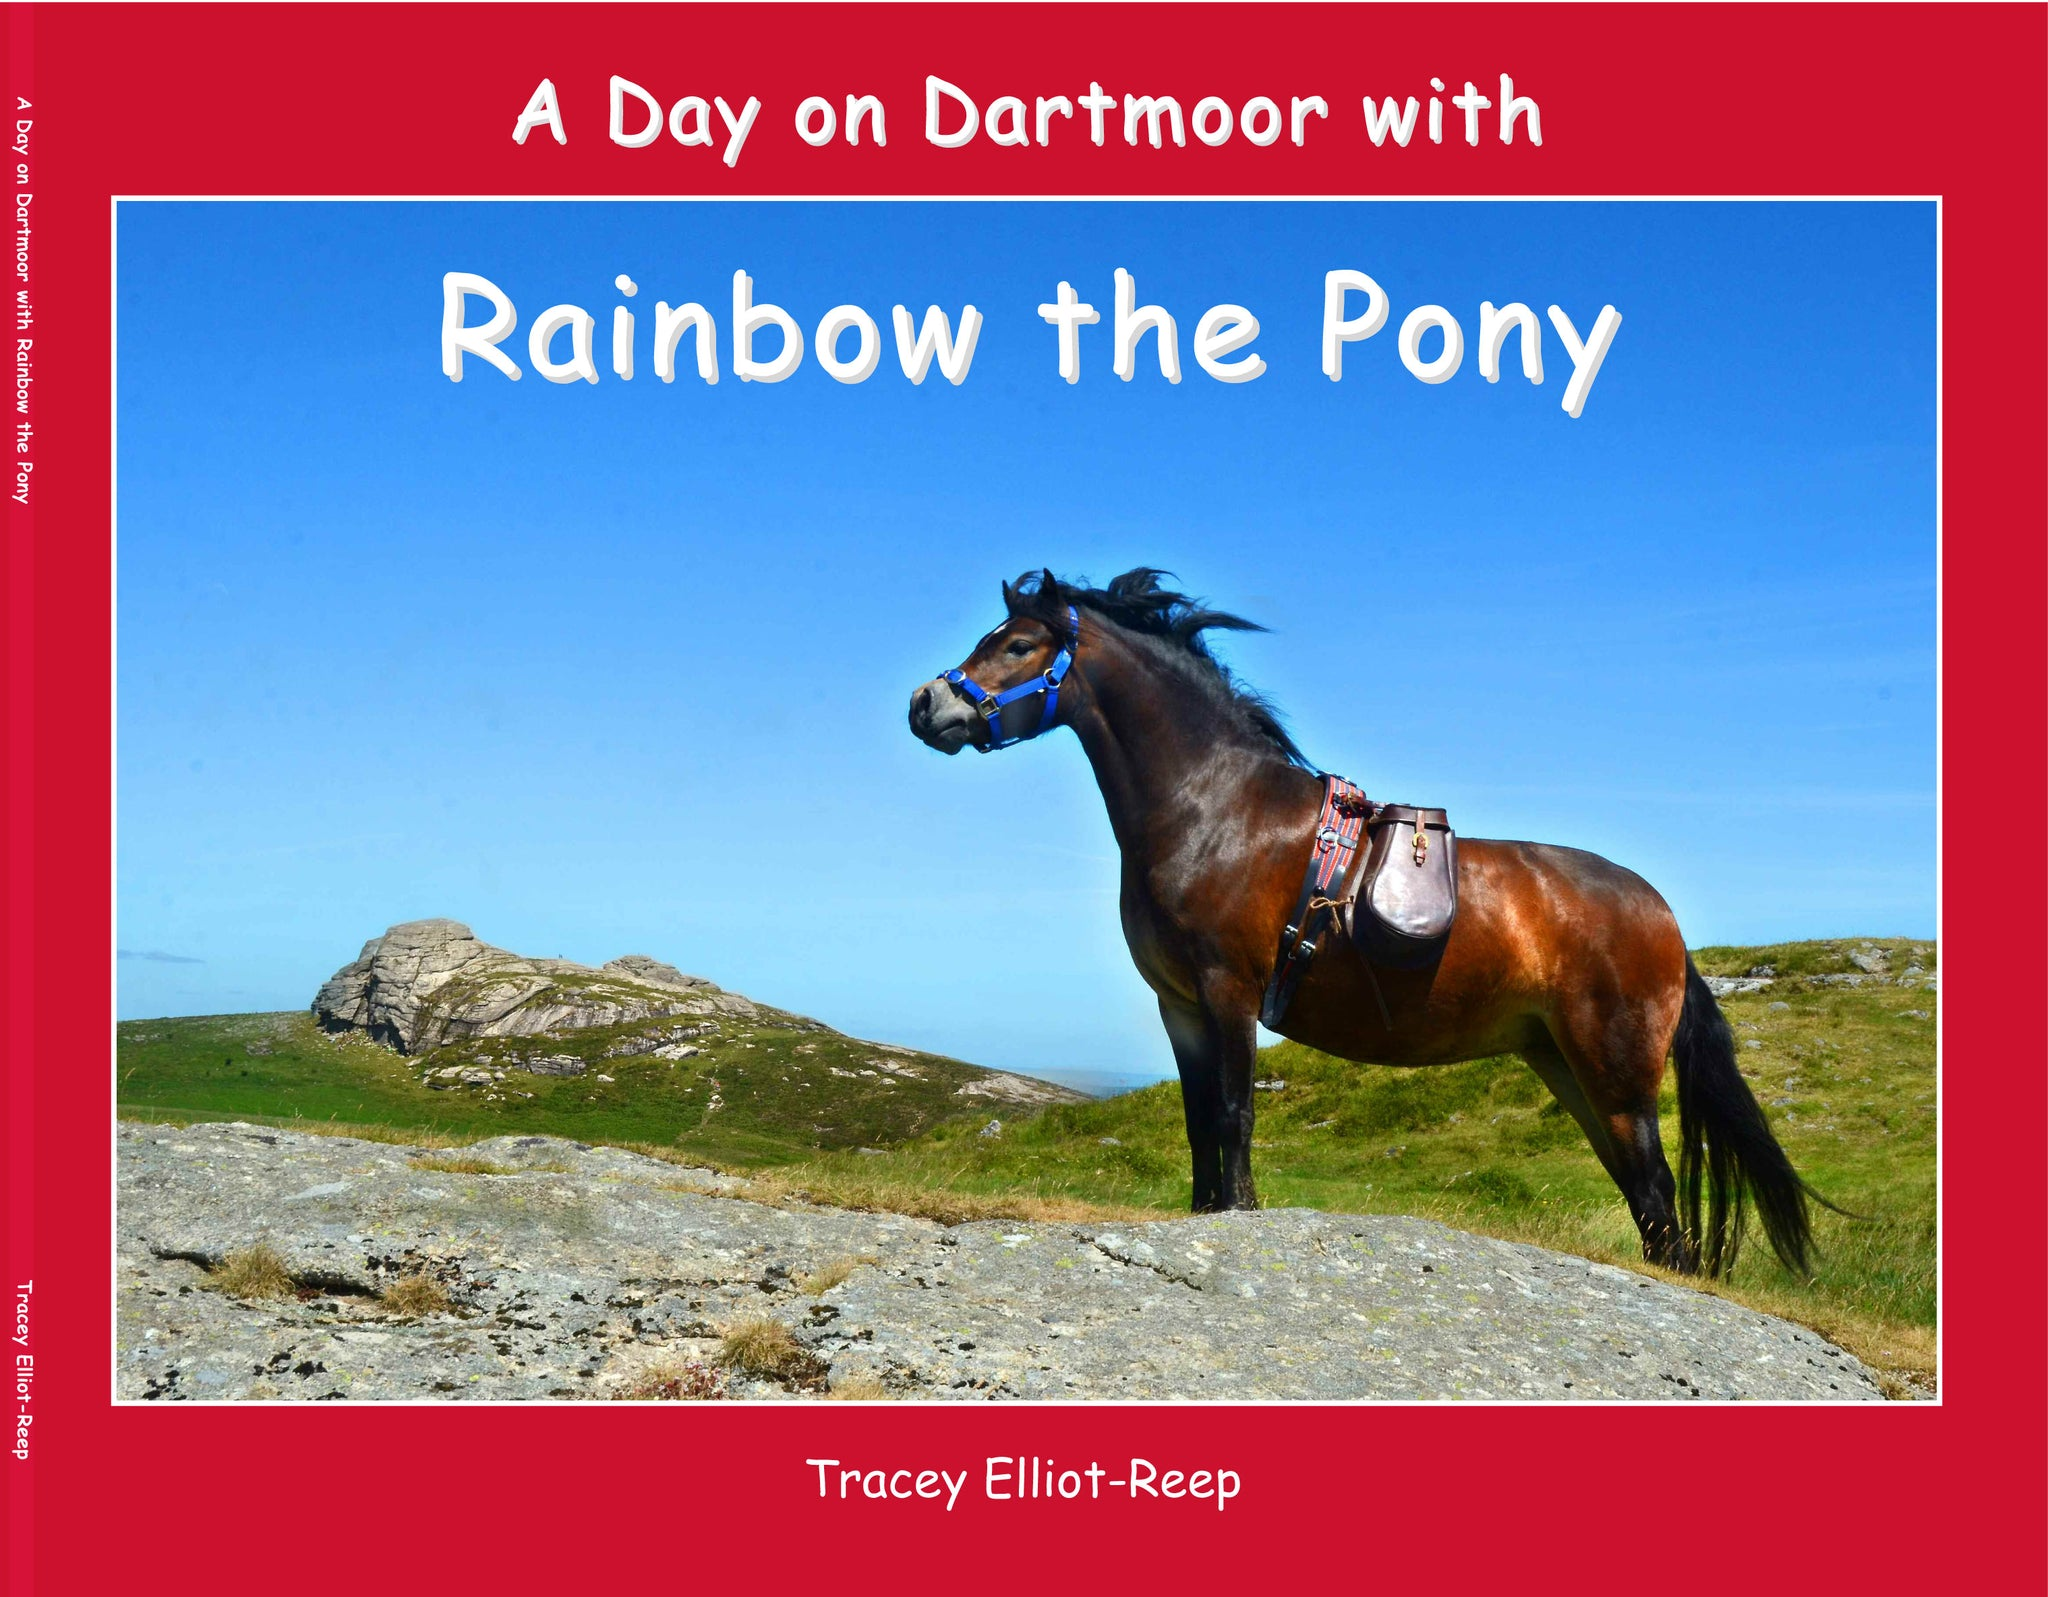 B08 - A Day on Dartmoor – Rainbow the Pony - Paperback Book